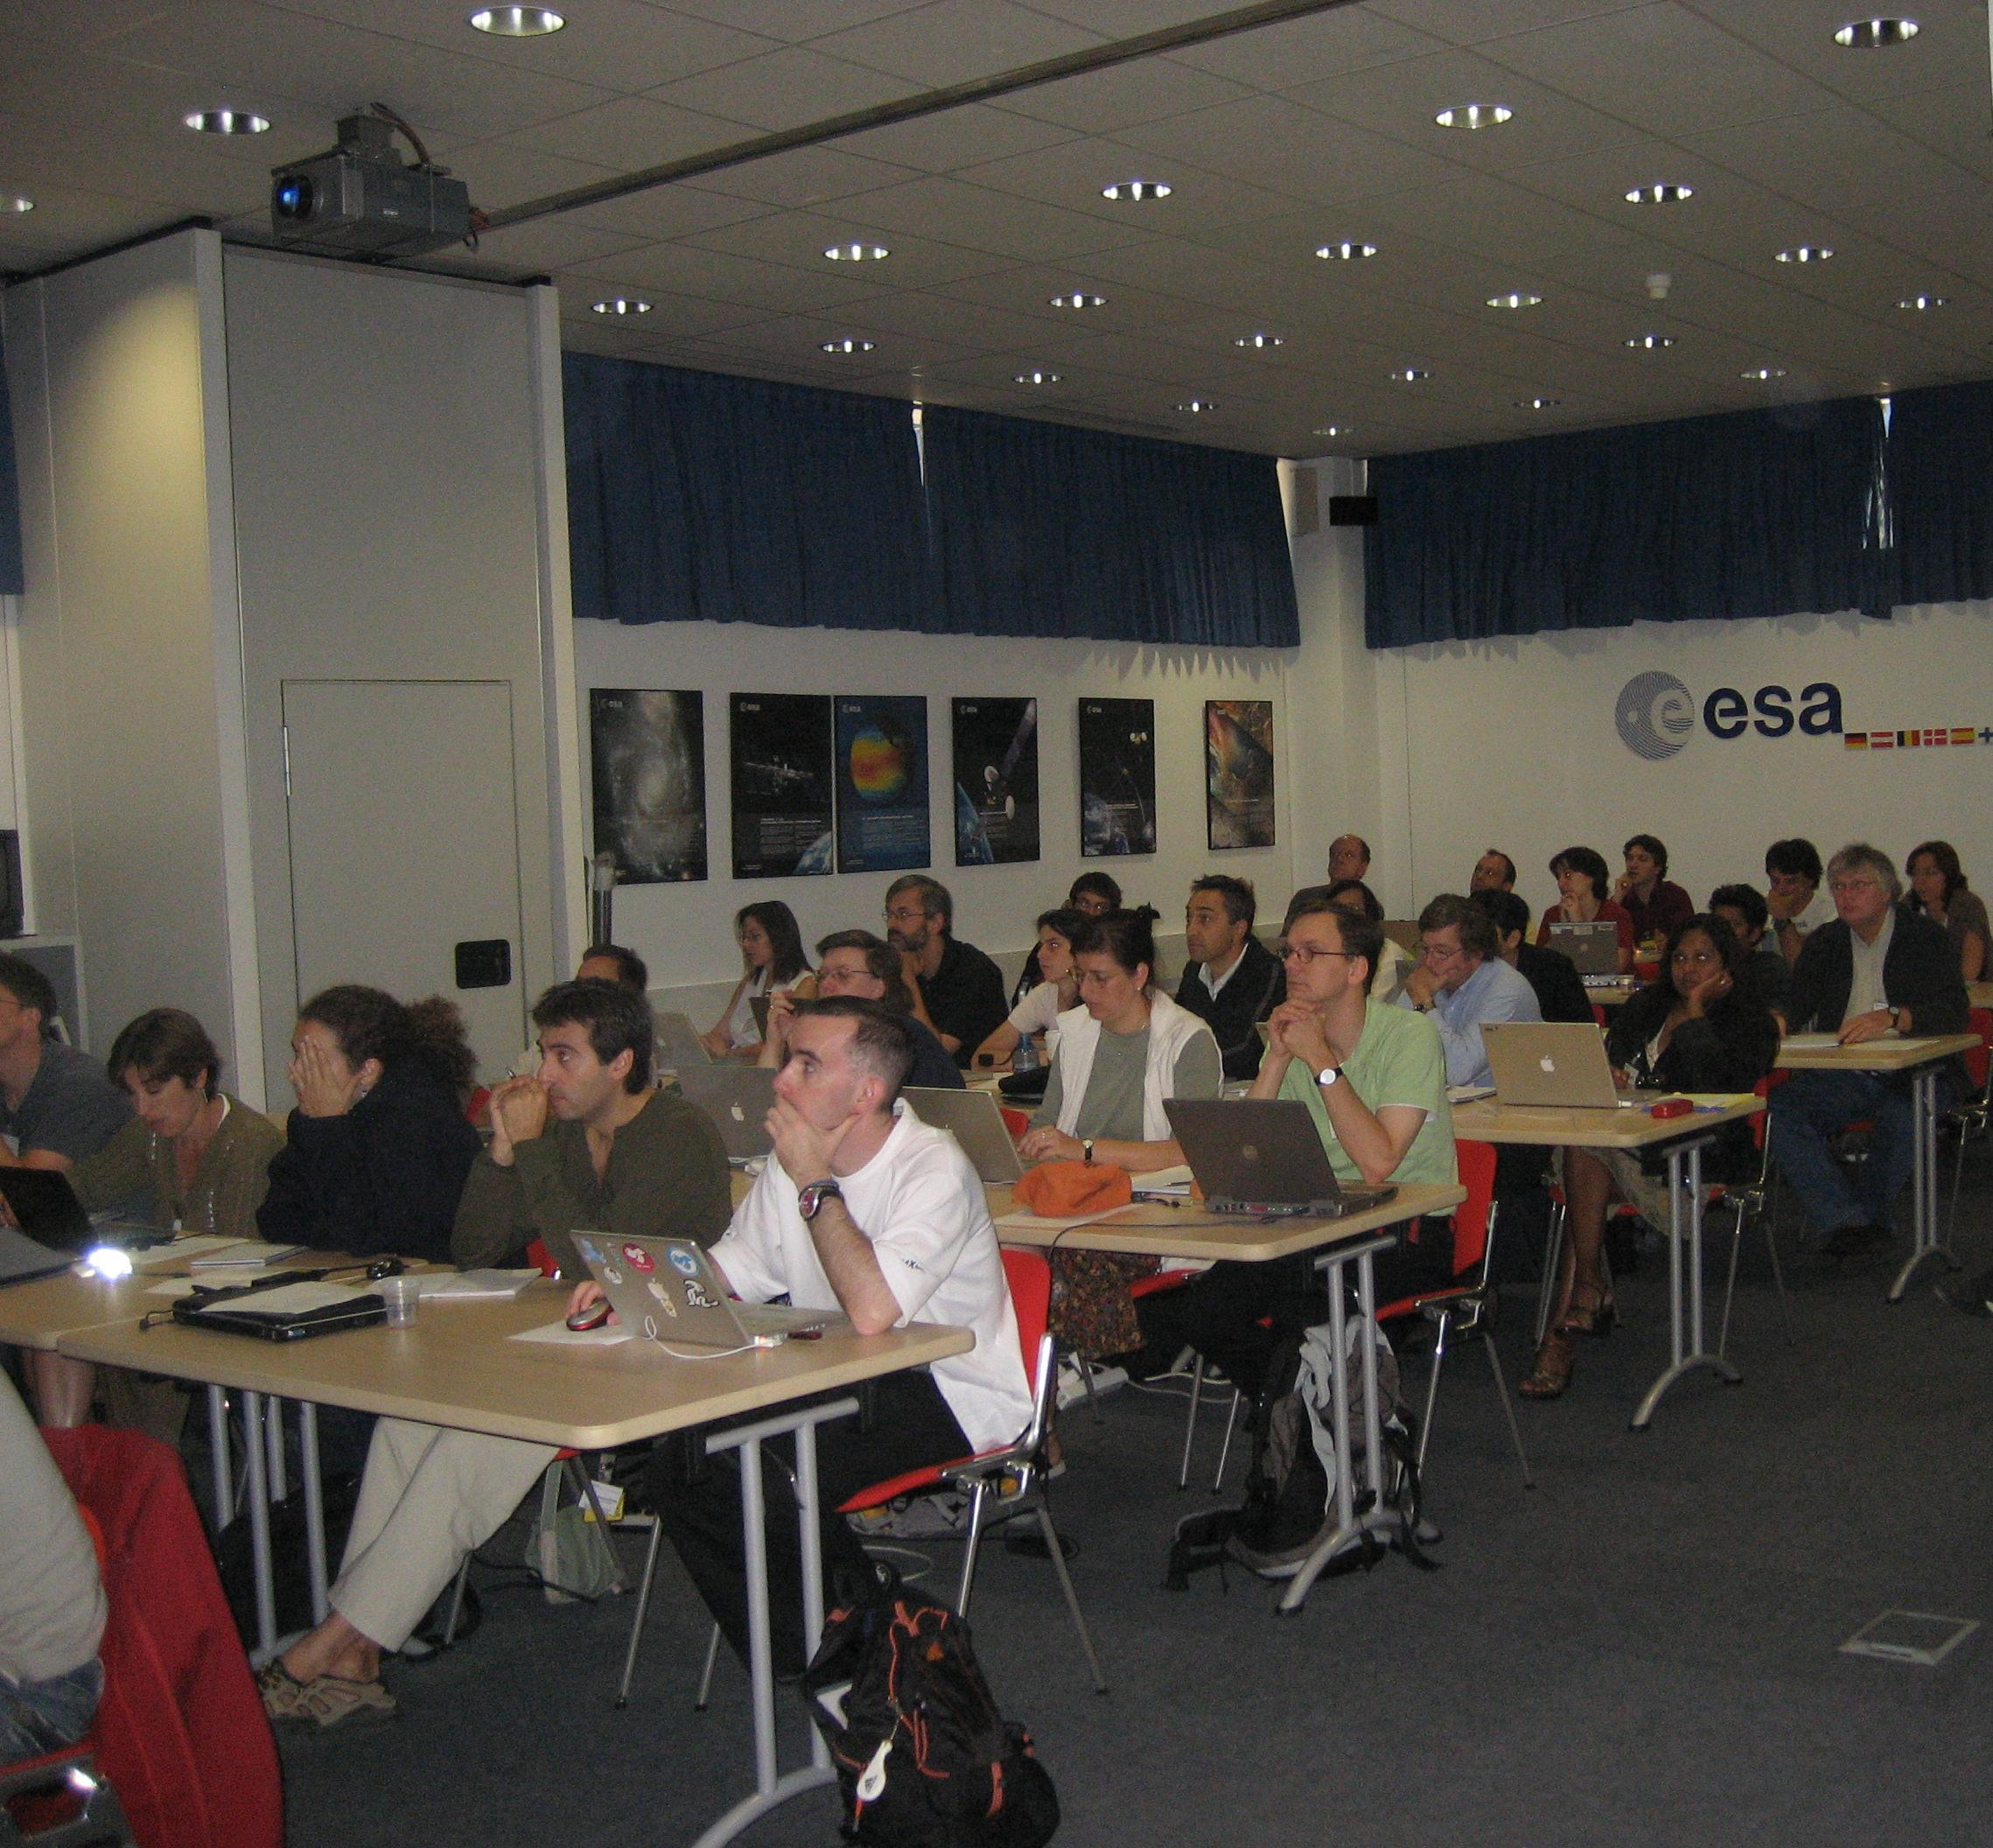 Herschel observation planning workshop participants